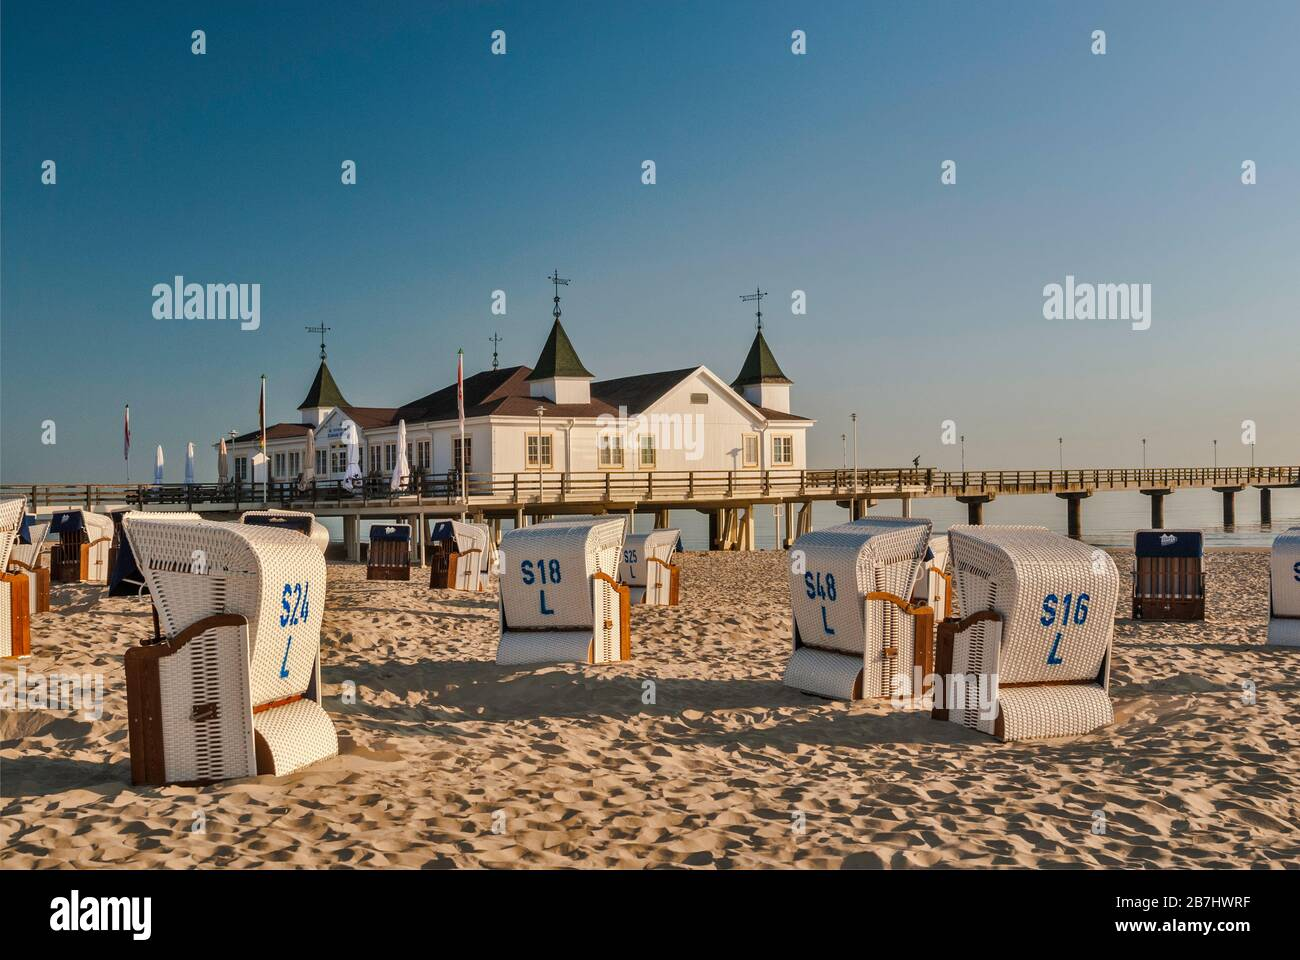 Wicker beach chairs and Seebrücke pier in Ahlbeck at Usedom Island in Mecklenburg-West Pomerania, Germany Stock Photo